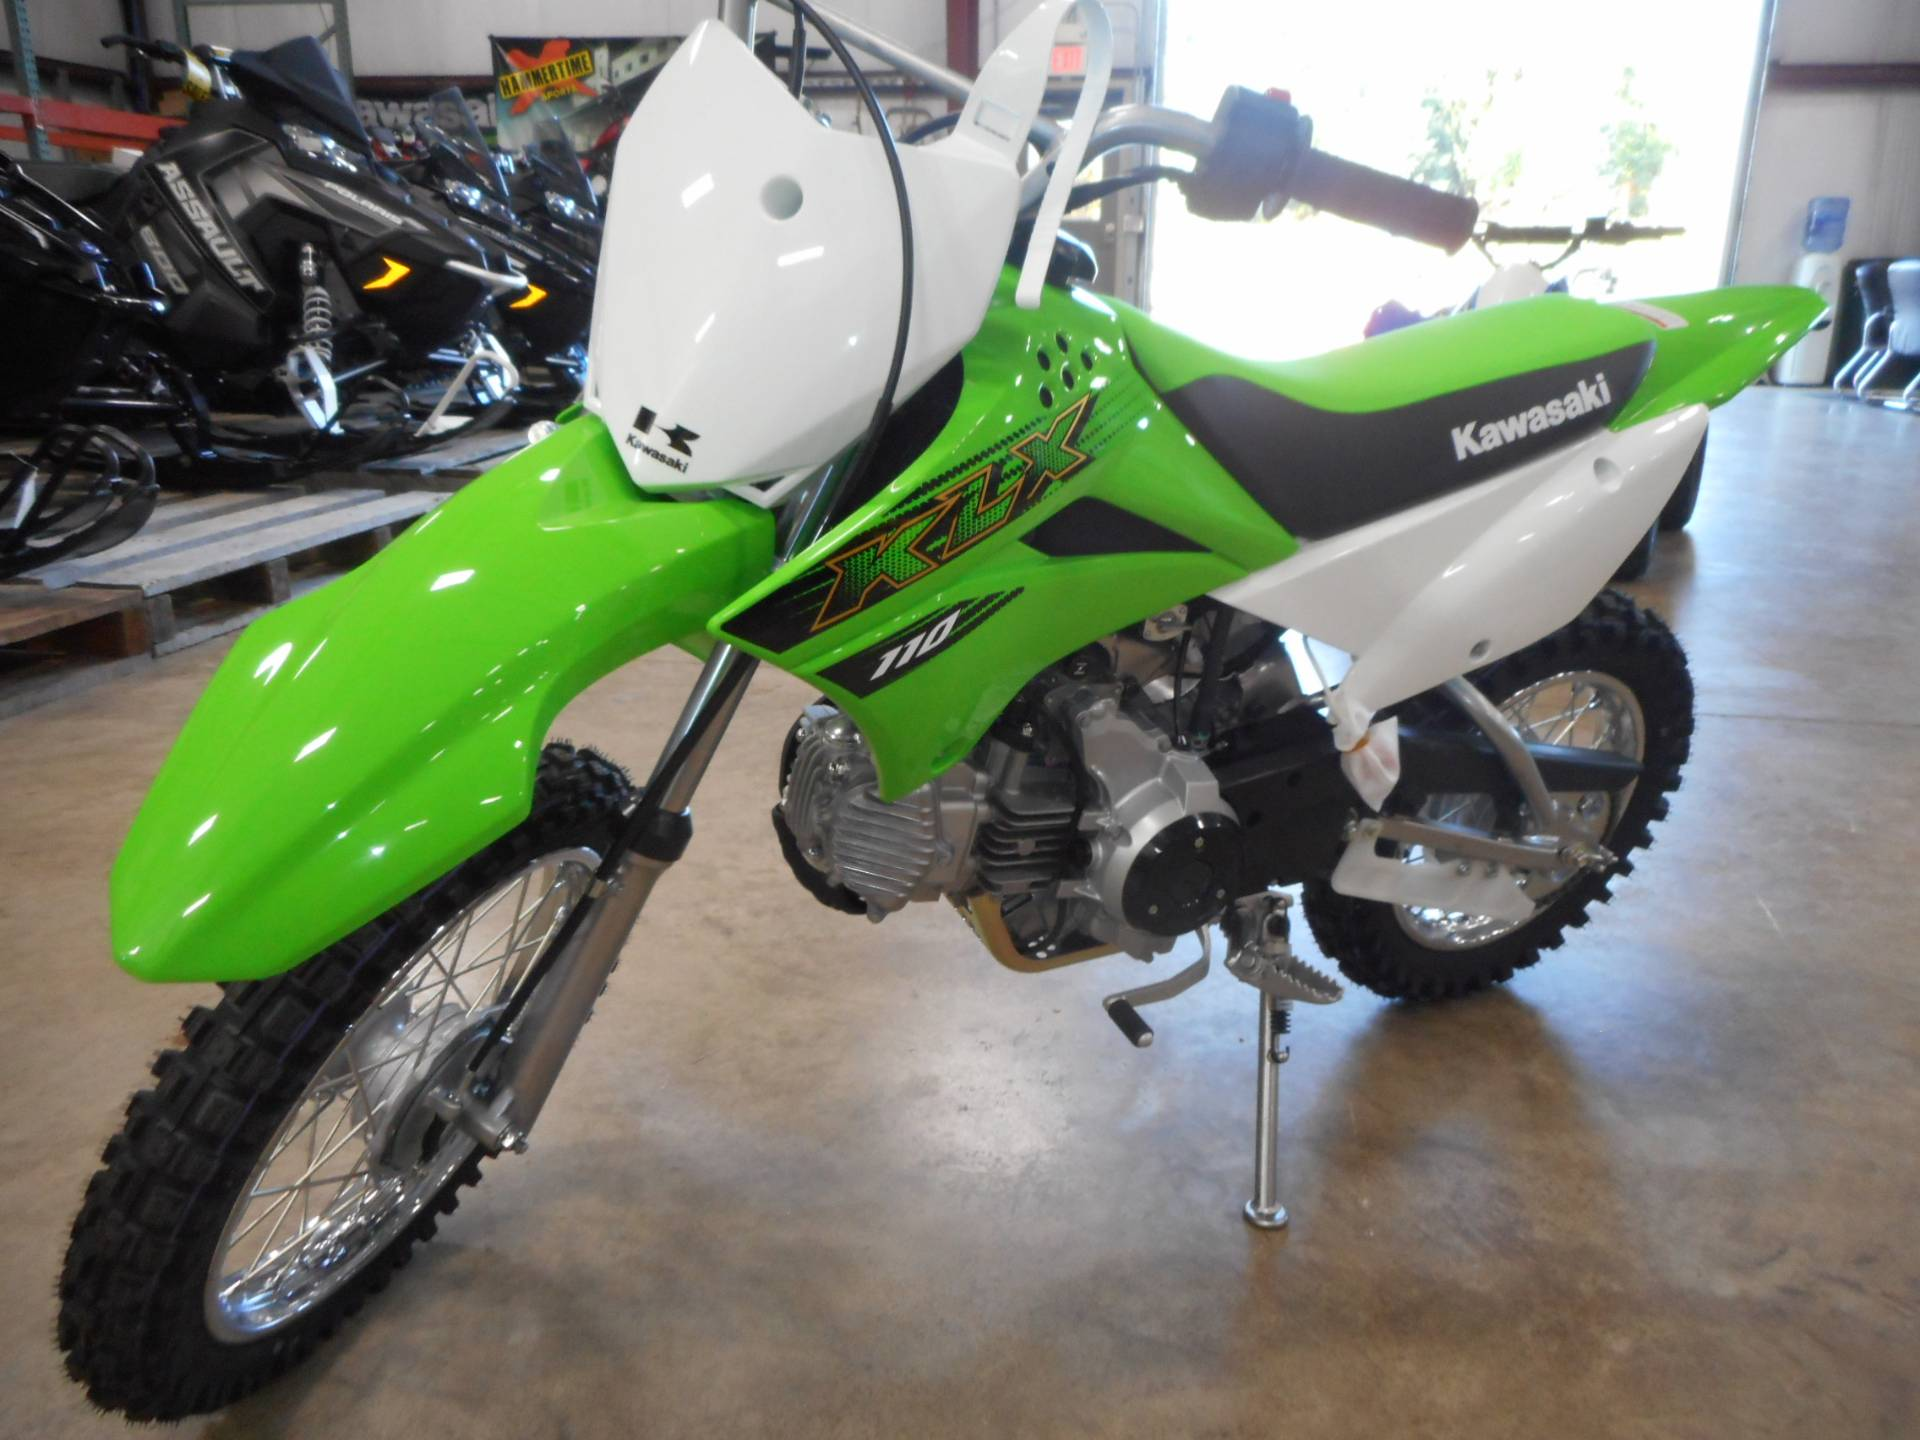 2020 Kawasaki KLX 110 in Belvidere, Illinois - Photo 2